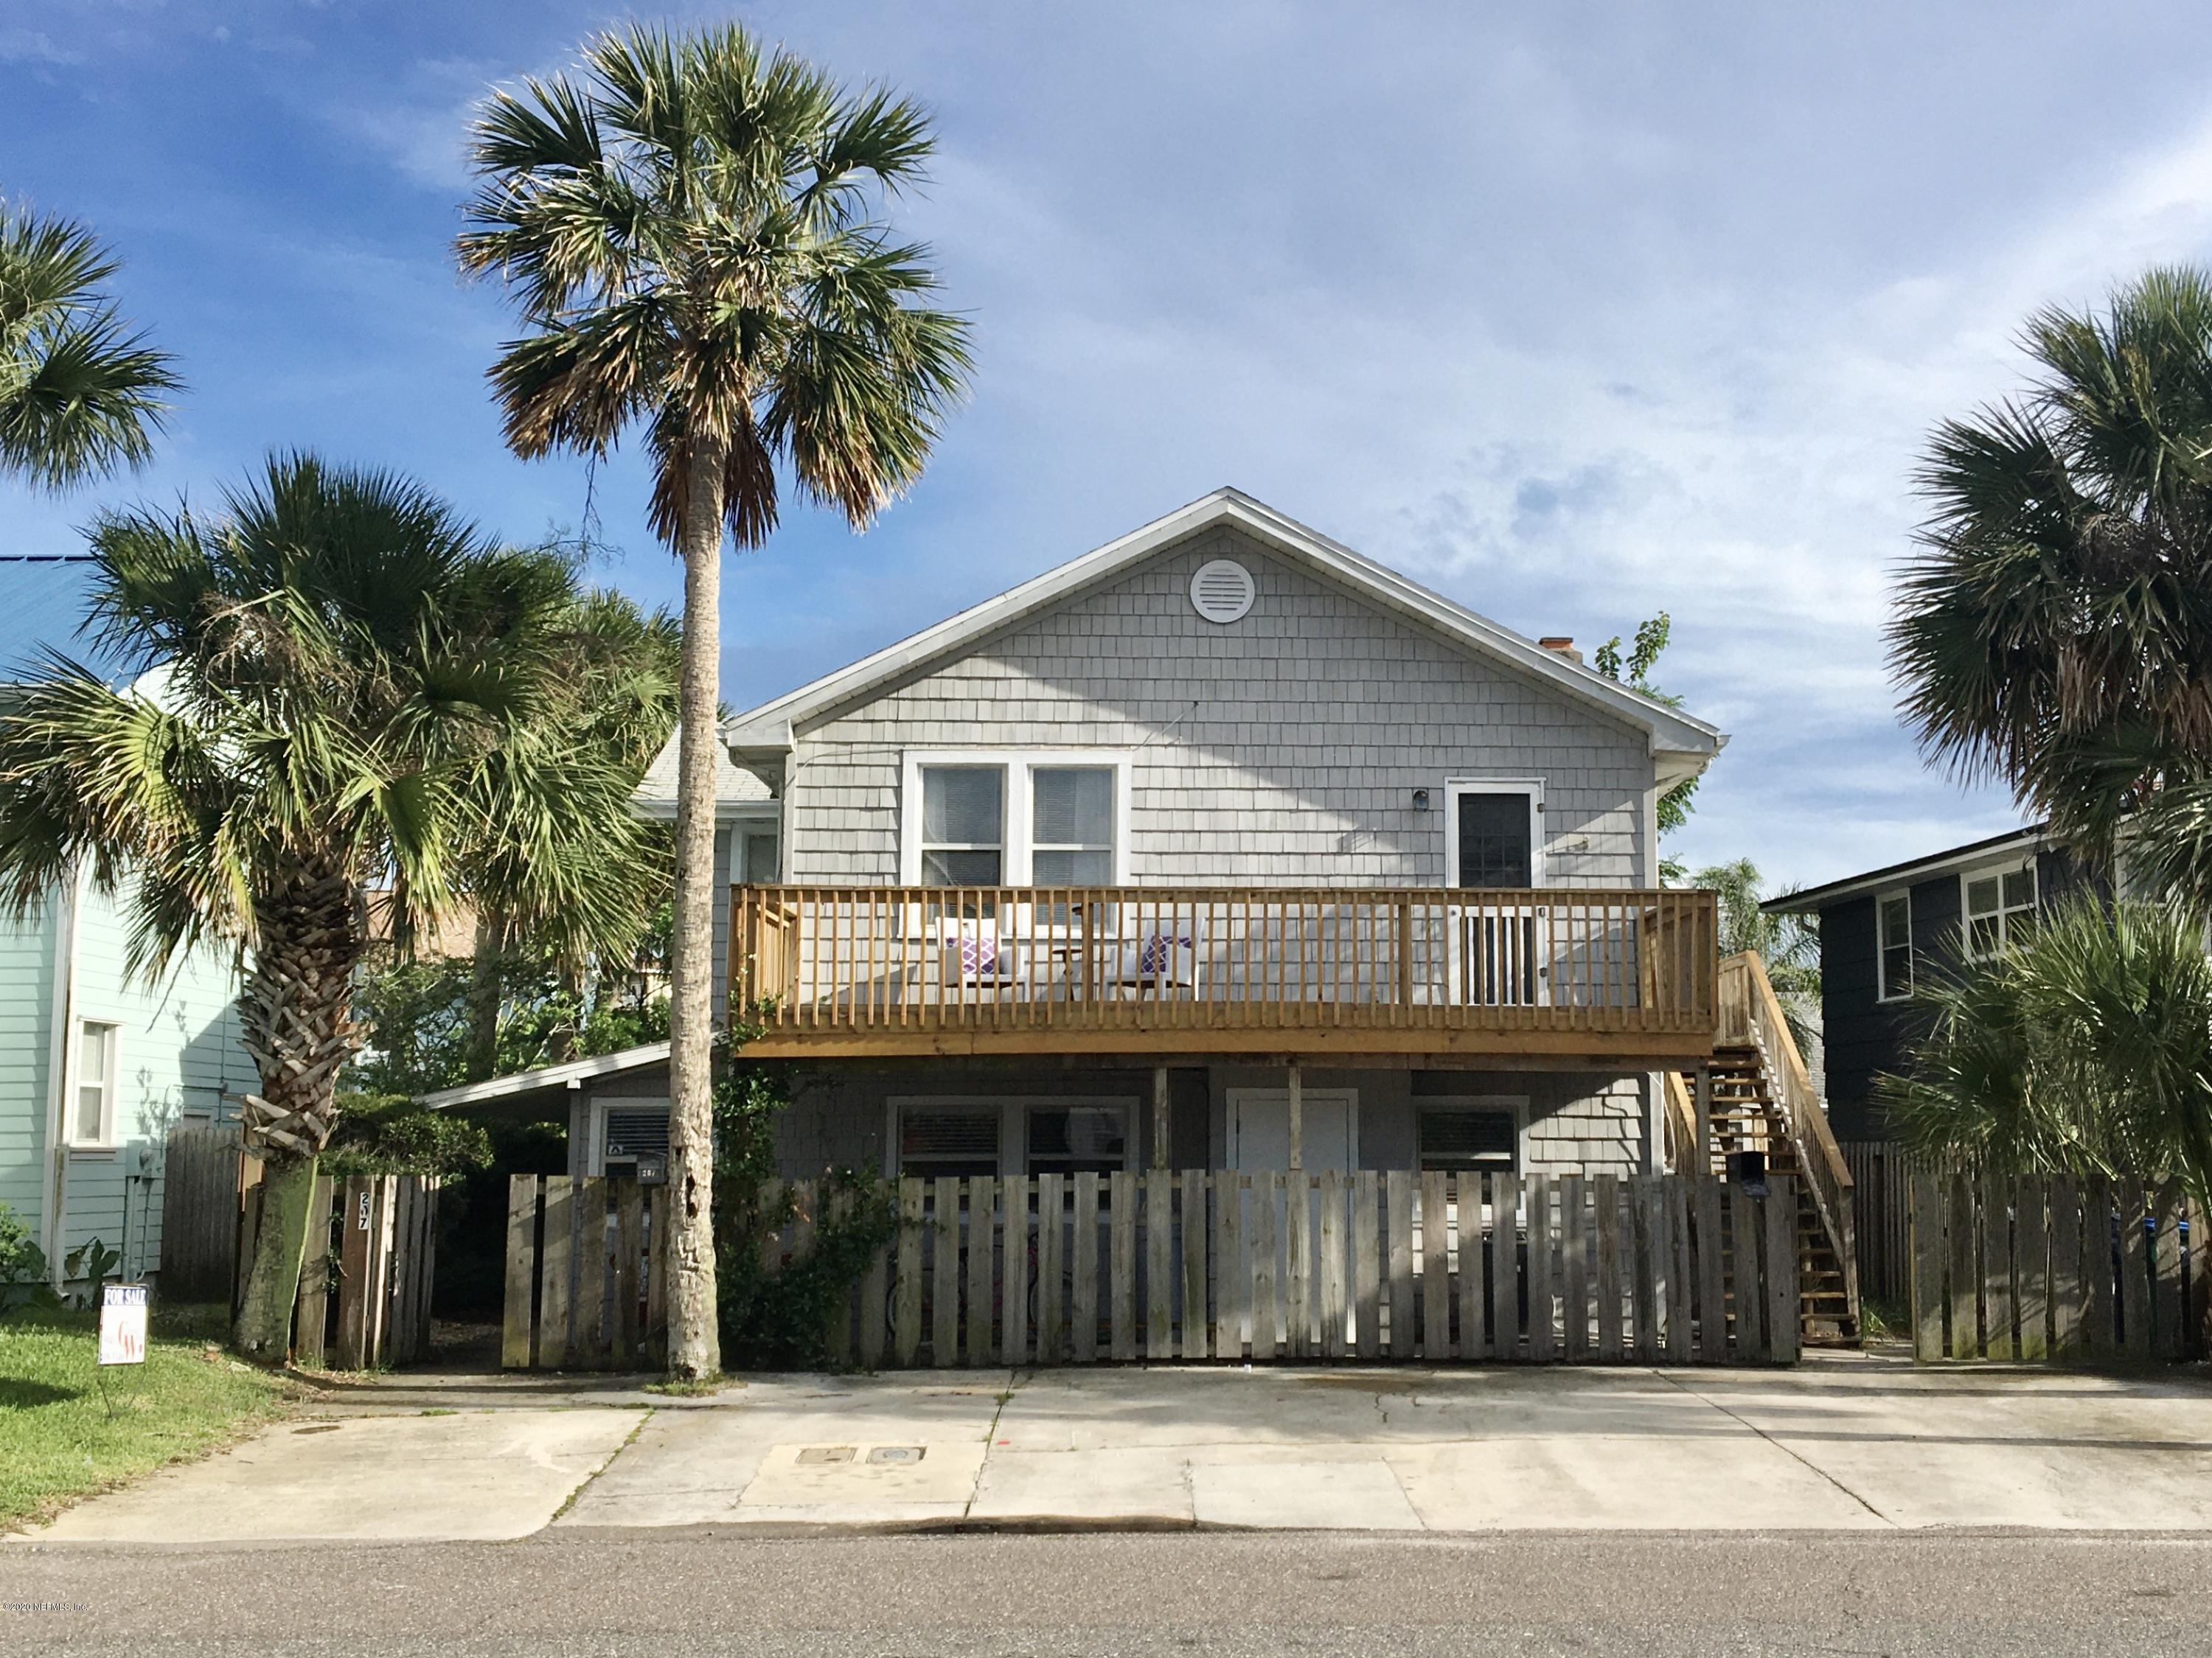 207 MARGARET, NEPTUNE BEACH, FLORIDA 32266, 5 Bedrooms Bedrooms, ,4 BathroomsBathrooms,Investment / MultiFamily,For sale,MARGARET,1042741